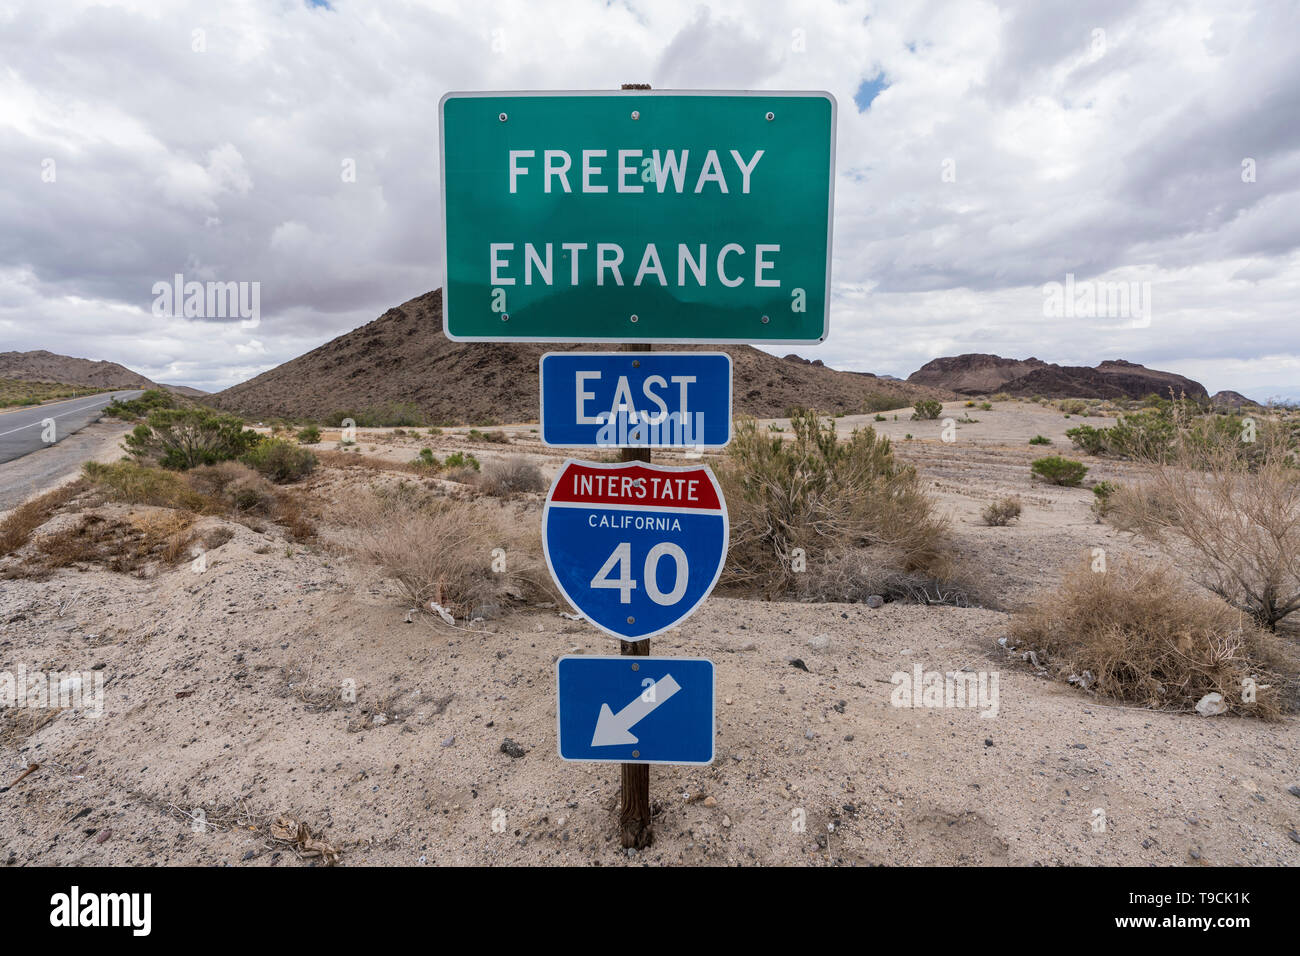 Interstate 40 east freeway on ramp sign near Mojave National Preserve in the desert region of Southern California. Stock Photo